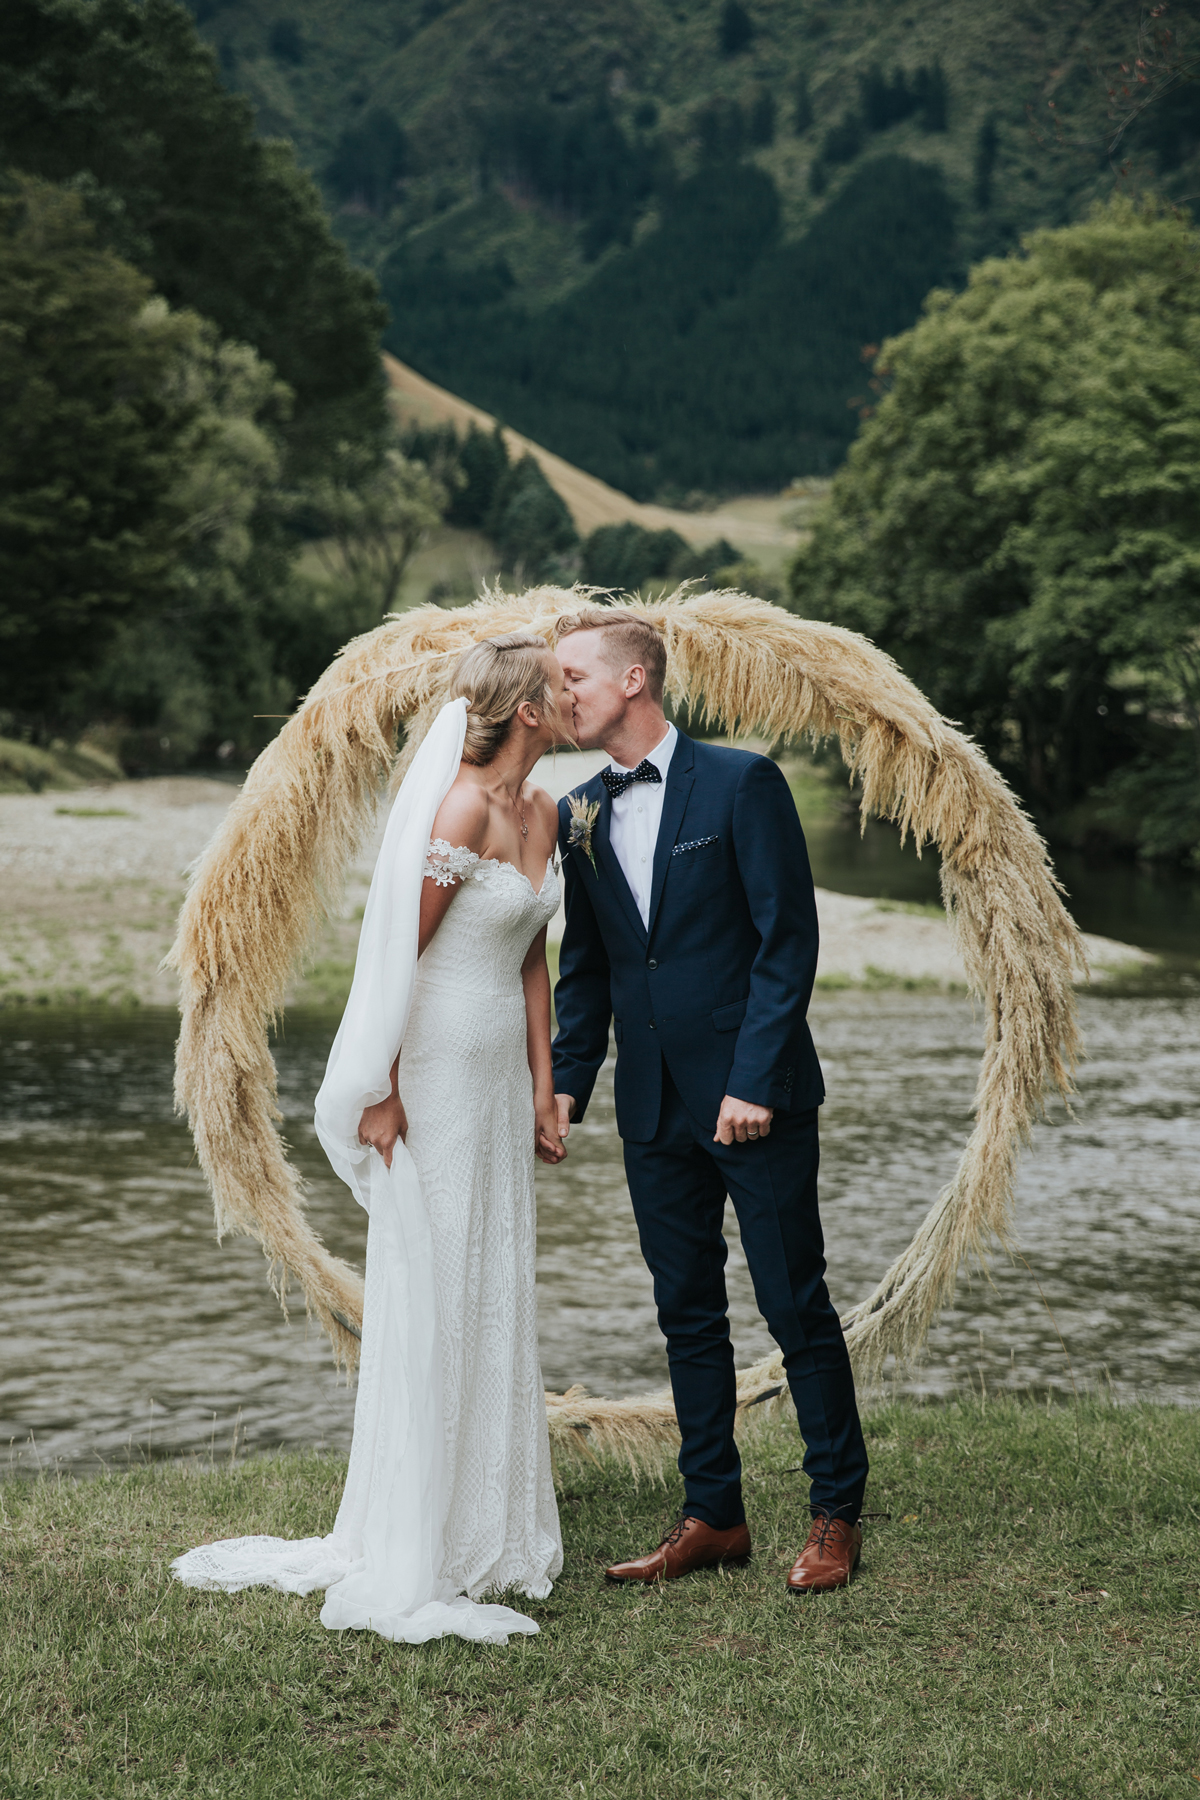 wedding wreath made of wheat with couple kissing